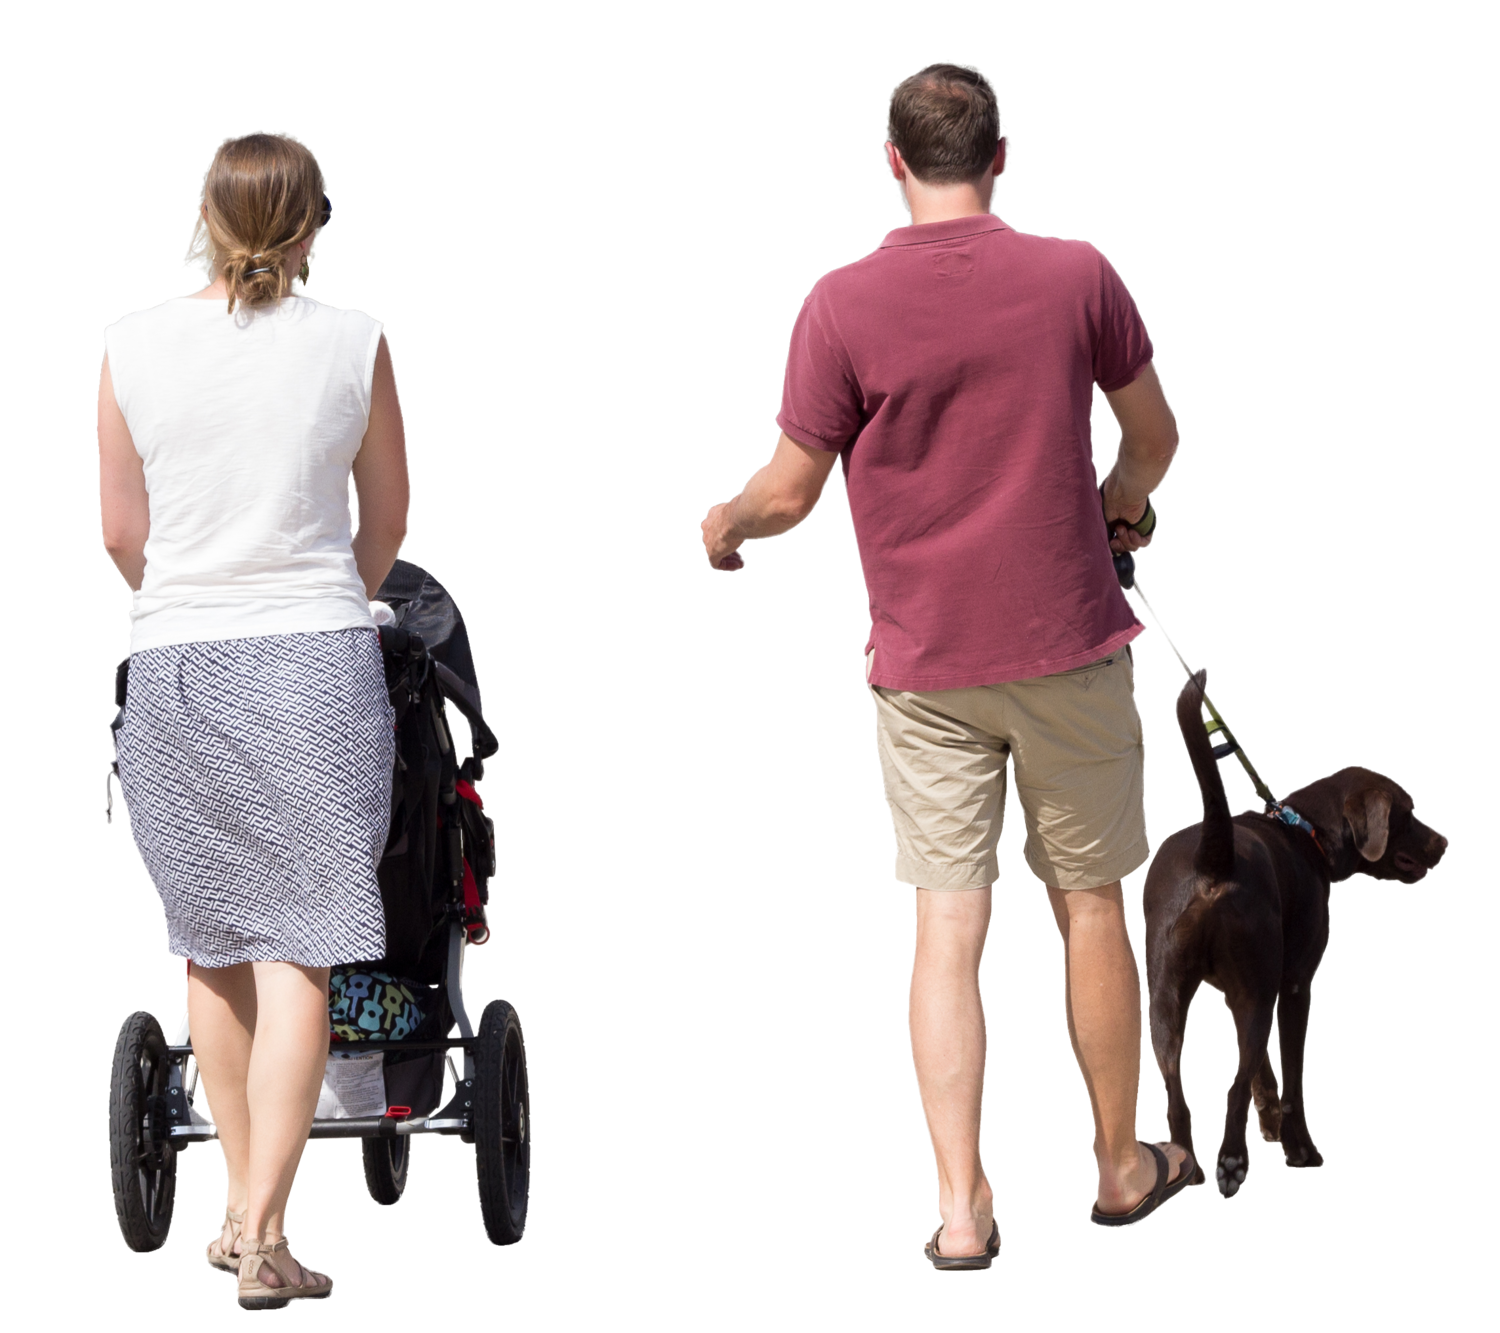 Person walking dog png. Img material pinterest photoshop